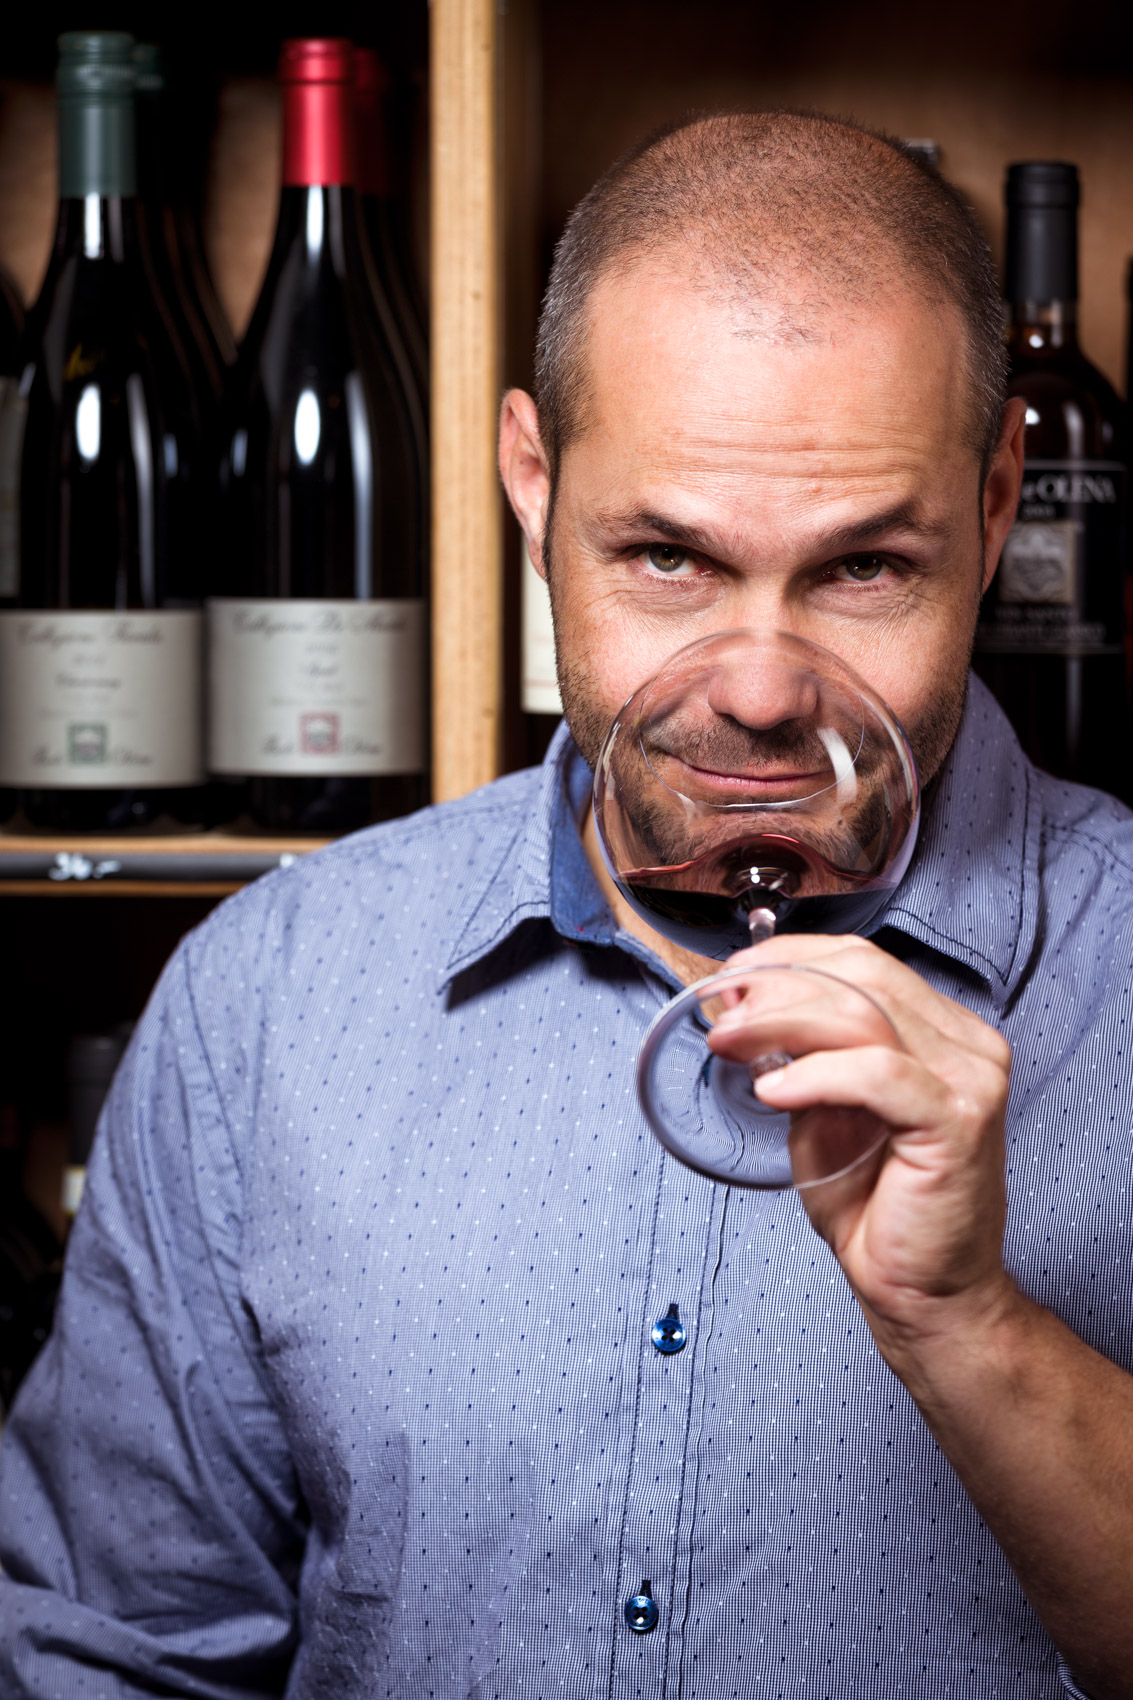 Wine Tasting | Stefan Kuerzi Portrait Photography